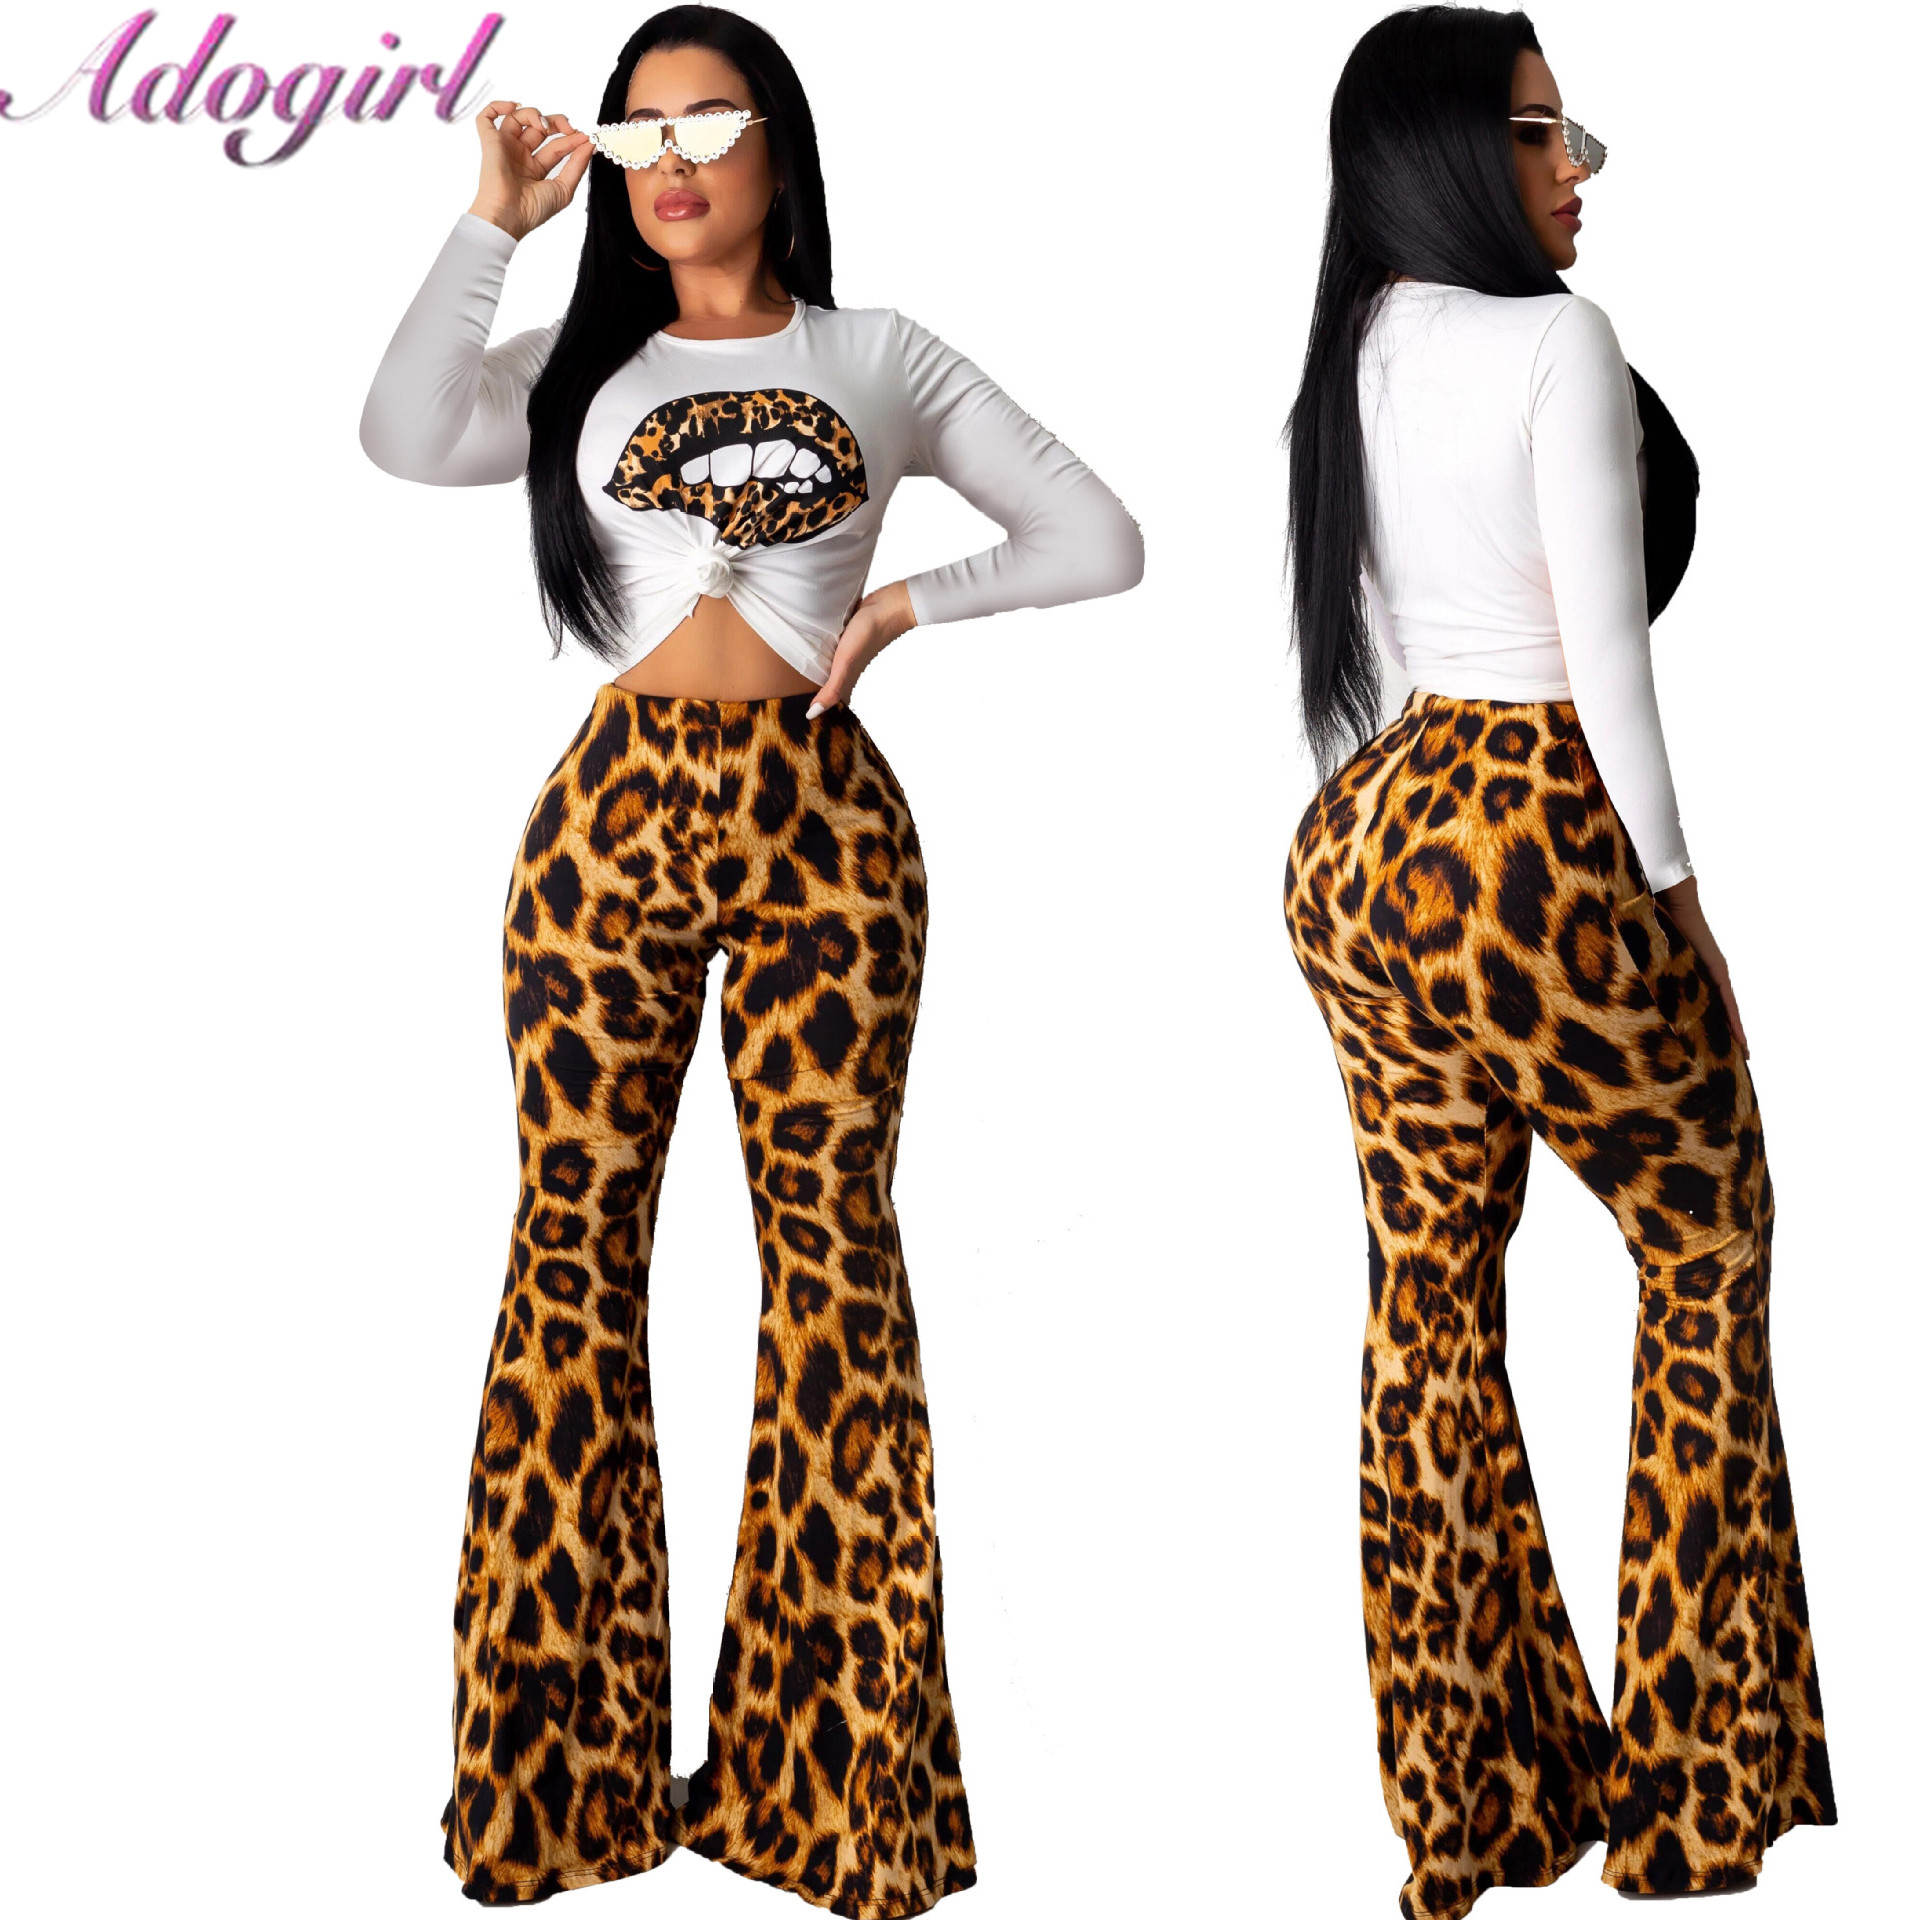 Adogirl Leopard Print Two Piece Set Women Casual Long Sleeve T-Shirt Crop Top + High Waist Flare Pants Suit Female Outfit Suits